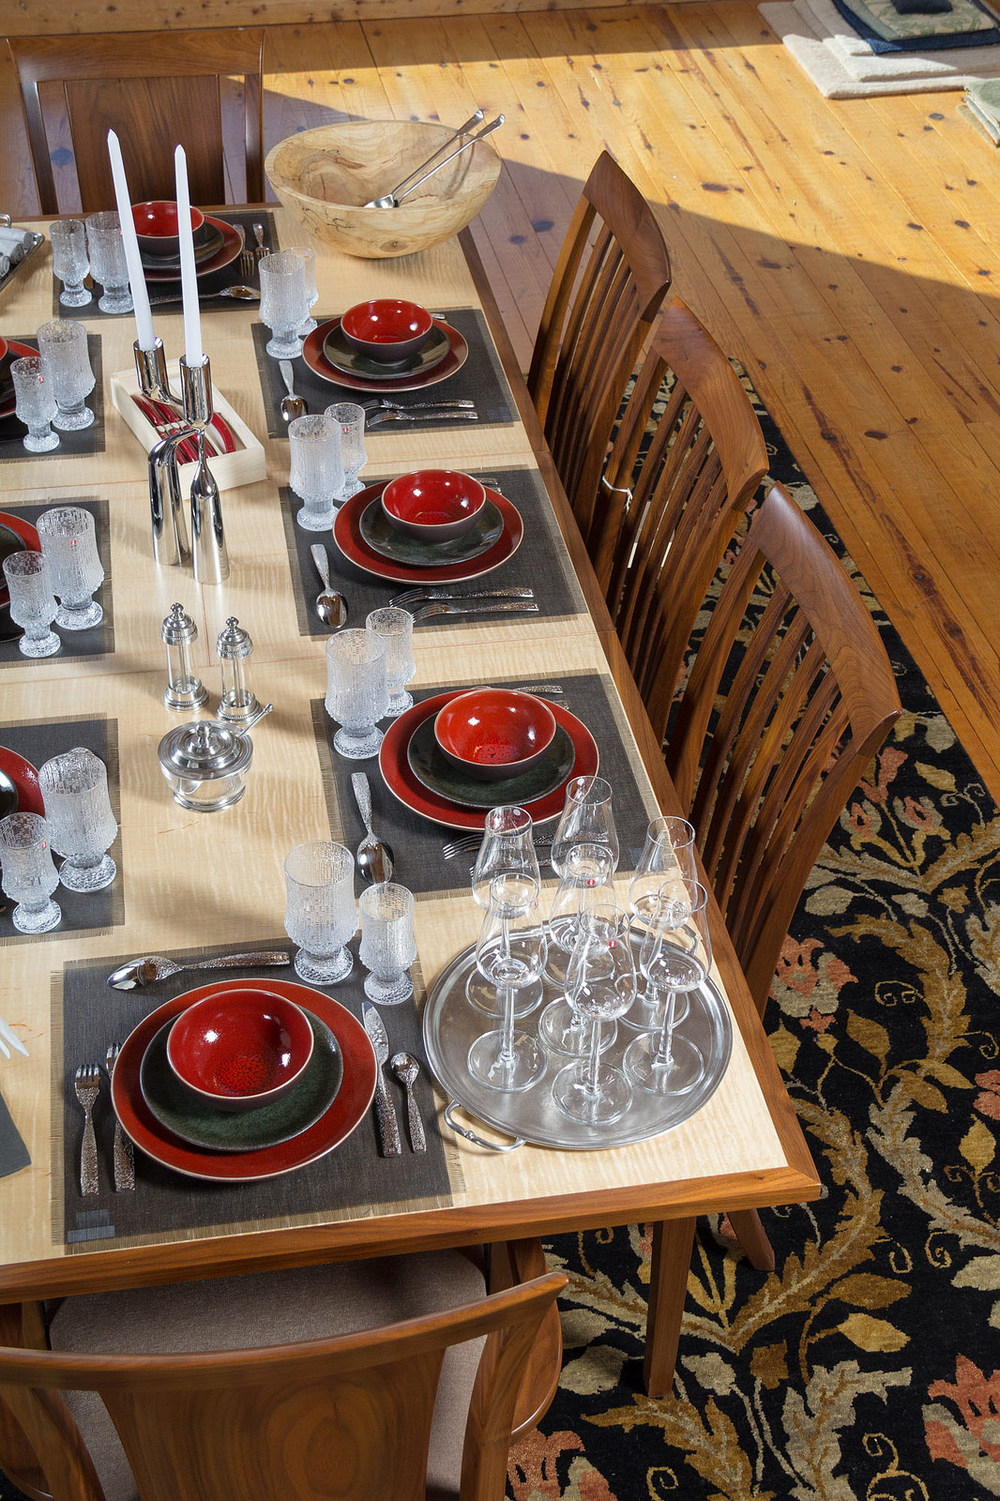 iittala Essence Plus Champagne glasses, Match Pewter Round tray with handles. Furniture from Furniture by Dovetail and Adriance Furnituremakers, rug provided and selected by Gregorian Oriental Rugs.